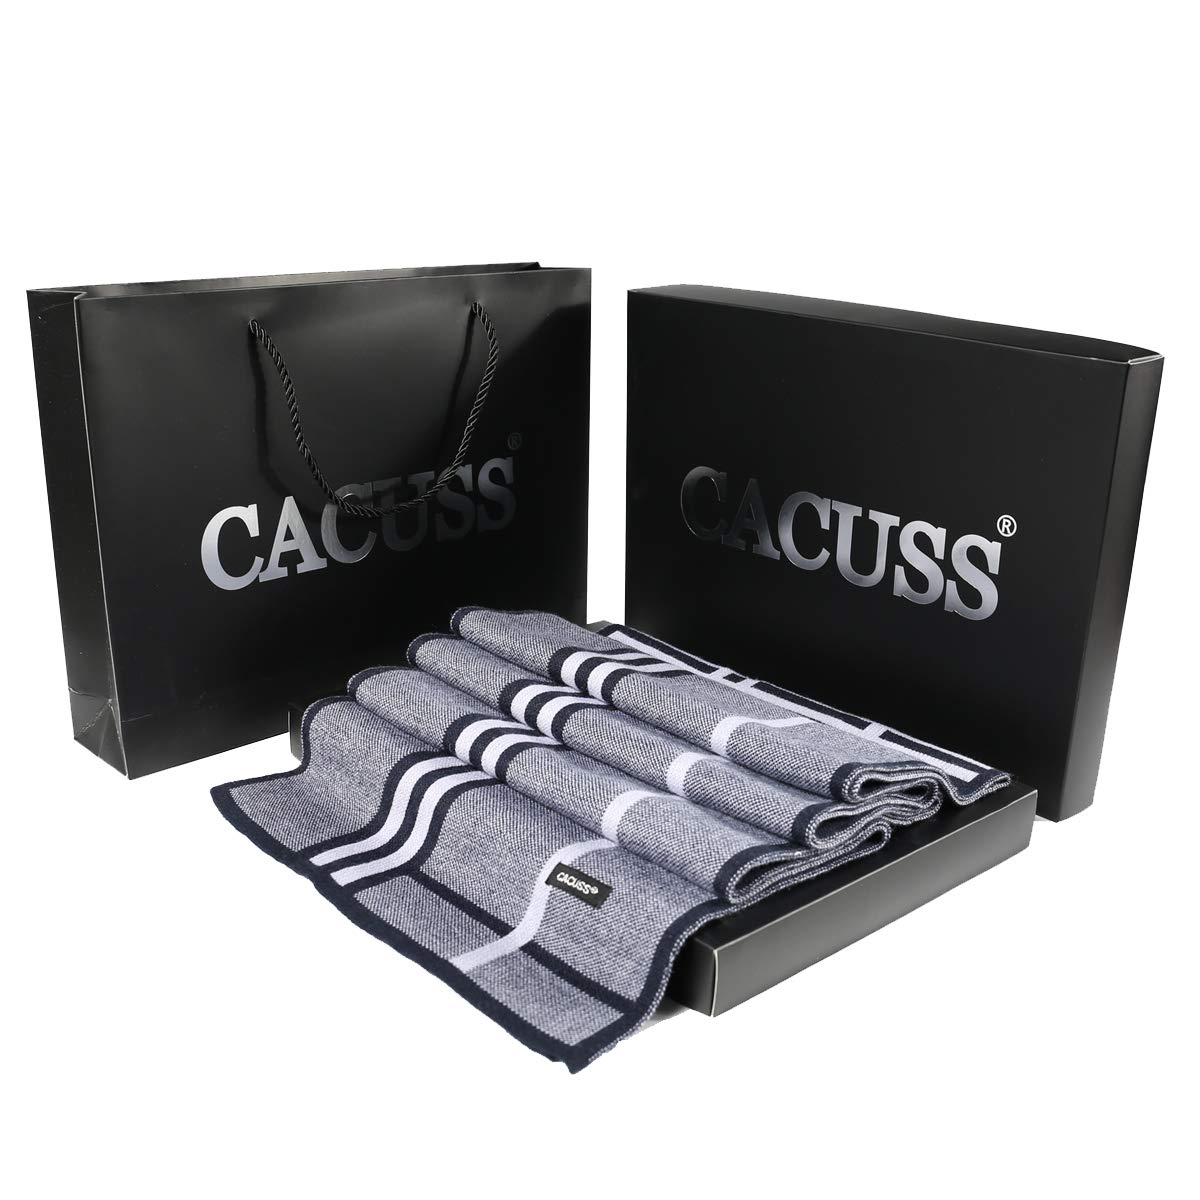 CACUSS Wool Scarf for Men, Winter US Version Mens Scarf,Striped Business Collar for Autumn and Winter with Quality Gift Box, Anti-wrinkle Free, Size 70.74×12.58 Inches (Navy)